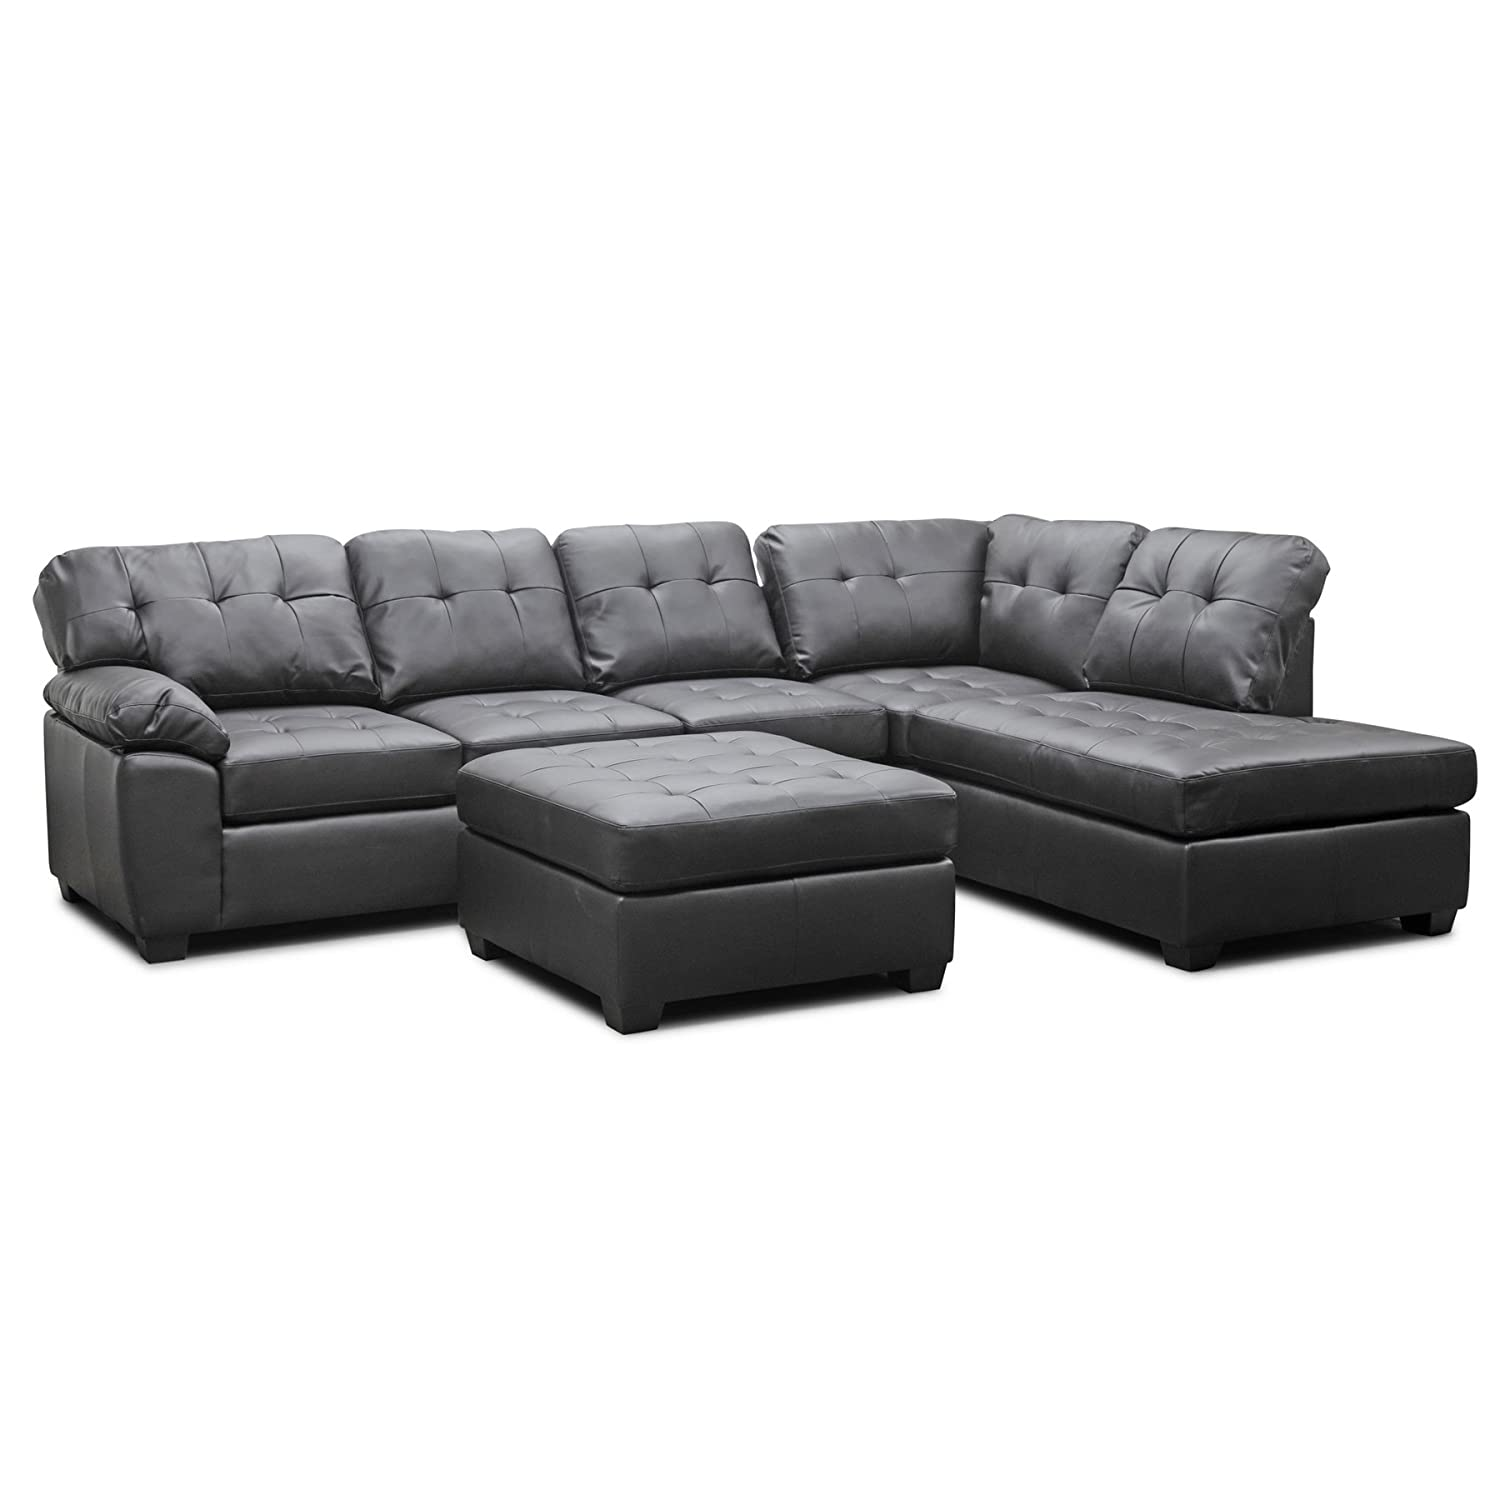 your living reclining with comfy for furniture sofa sleeper genuine sectional fill leather room fabric recliner sectionals modern chaise couches costco decorating couch cheap home ideas